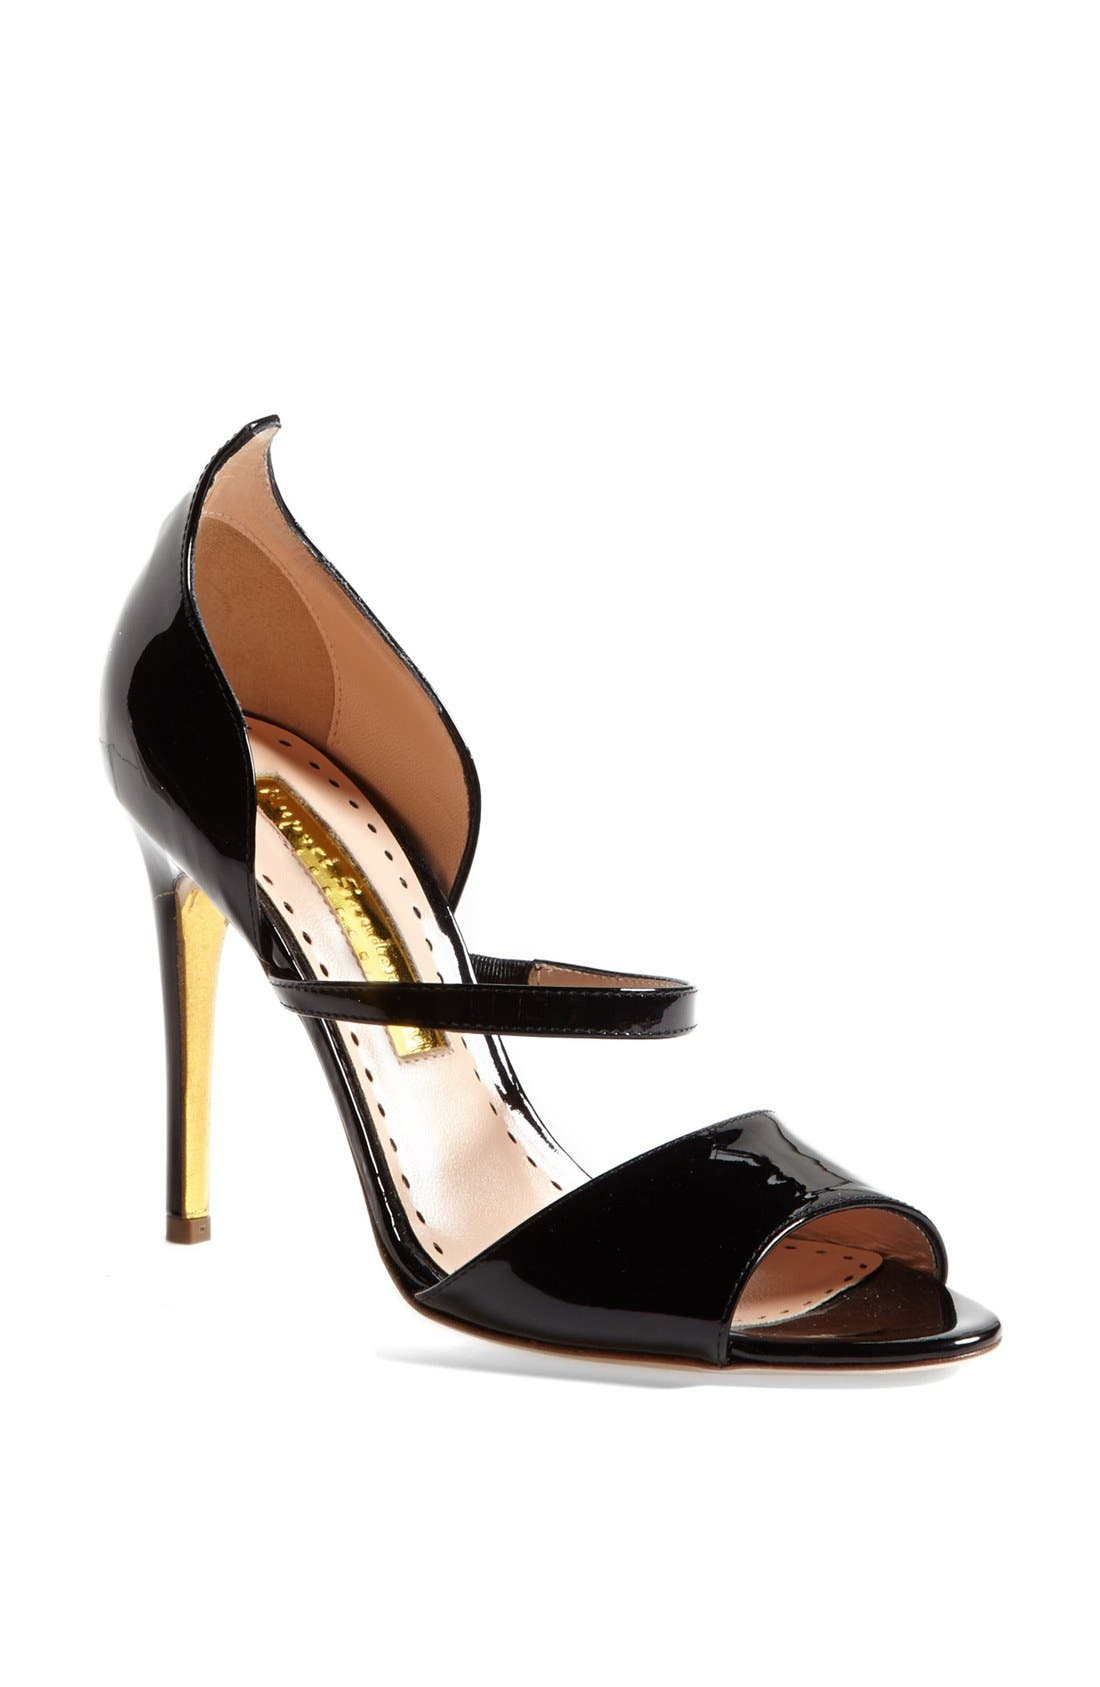 Alternate Image 1 Selected - Rupert Sanderson 'Ophelia' Patent Leather Sandal